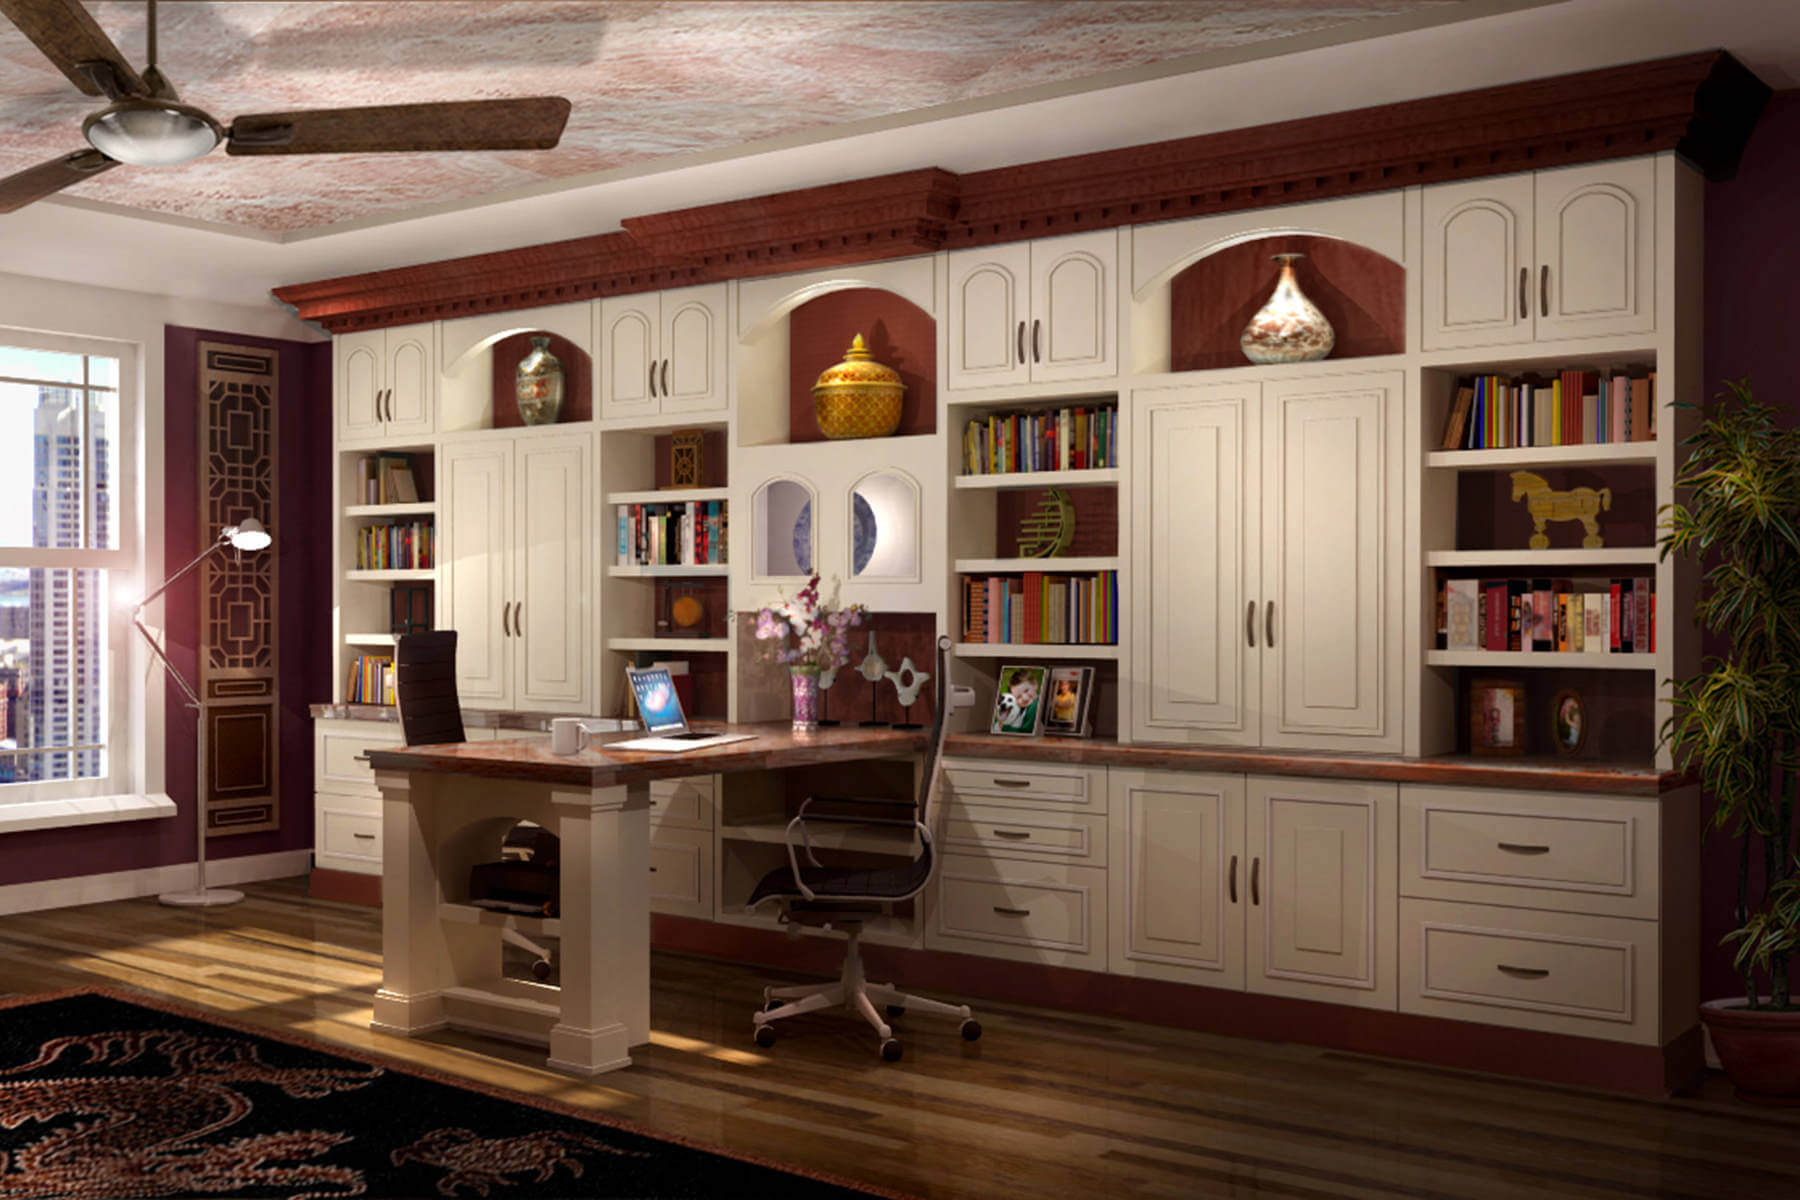 Massive Custom Home Office Storage Unit with Extension Desk from the Wall